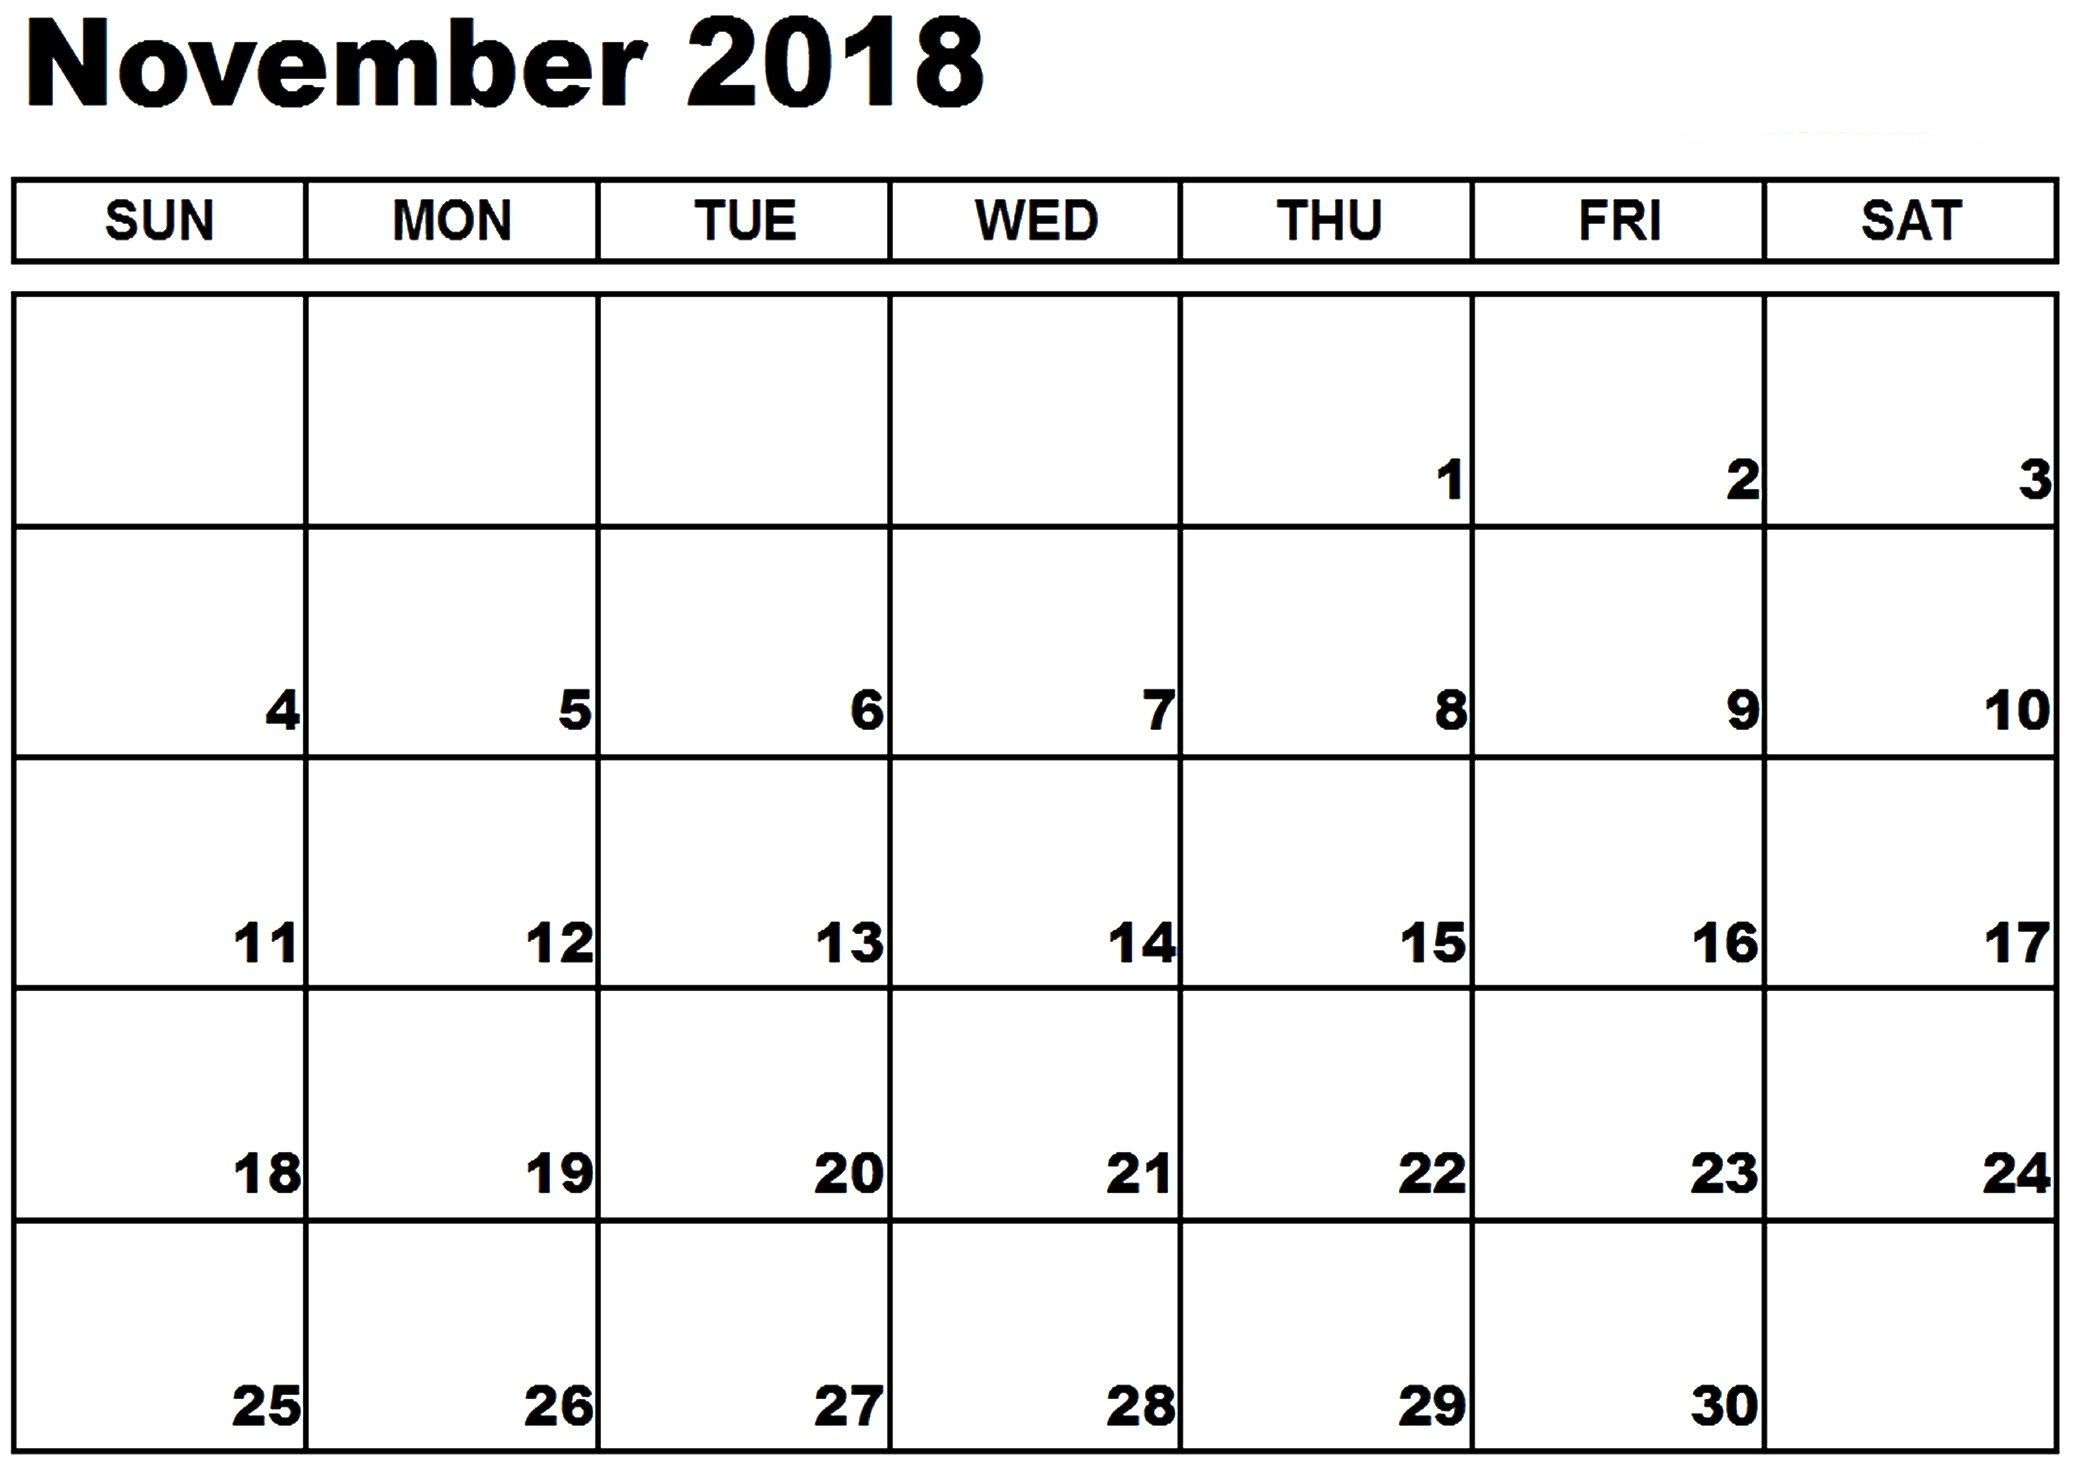 free printable november 2018 calendar usa pdf template download::November 2018 Calendar USA